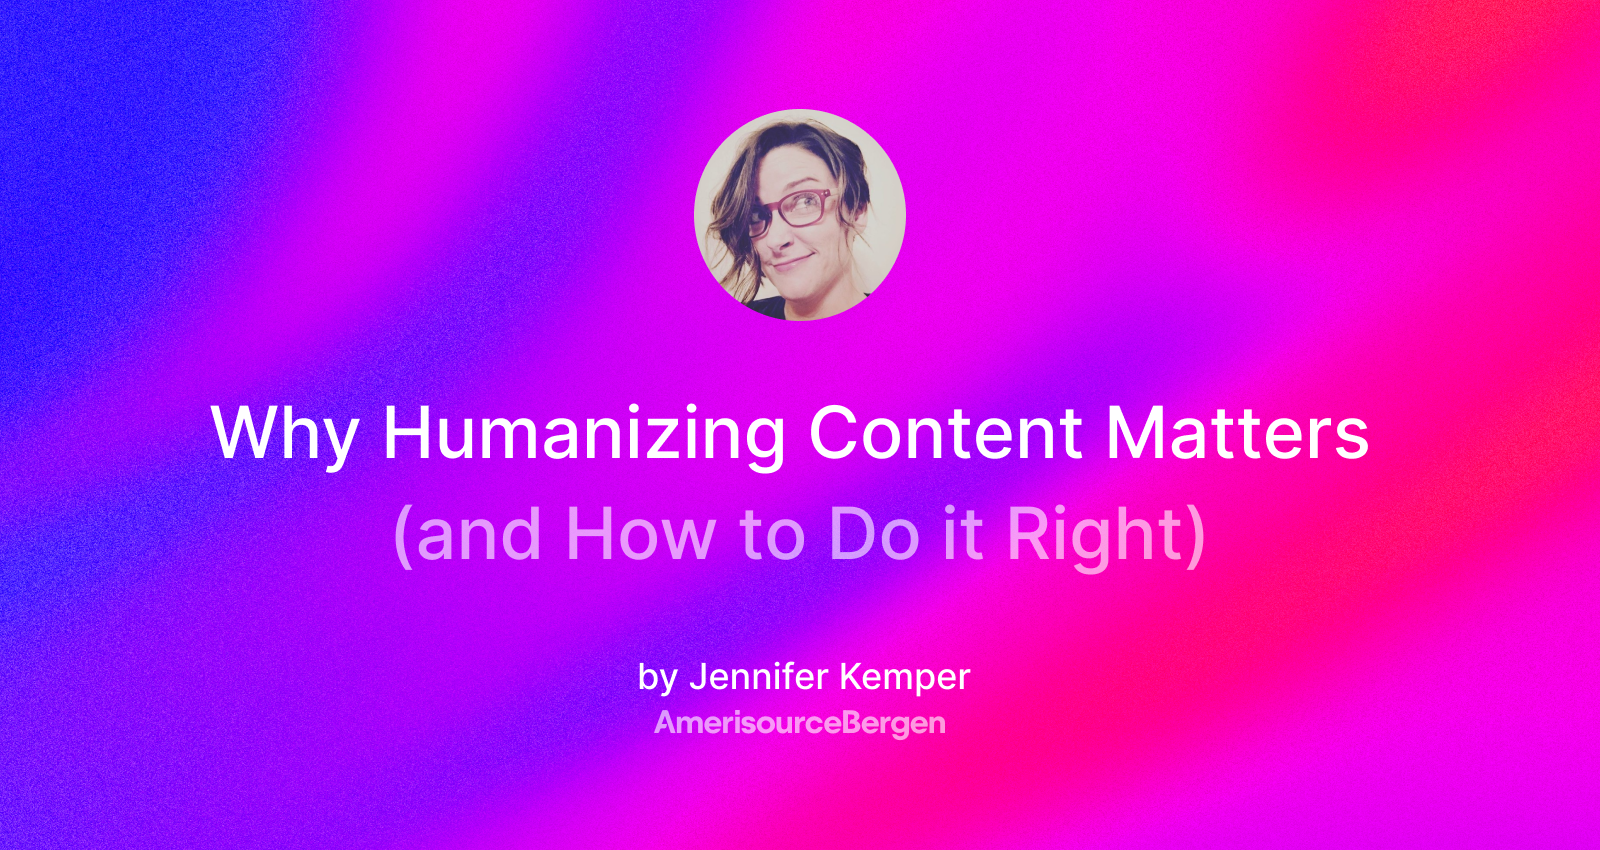 Why Humanizing Content Matters